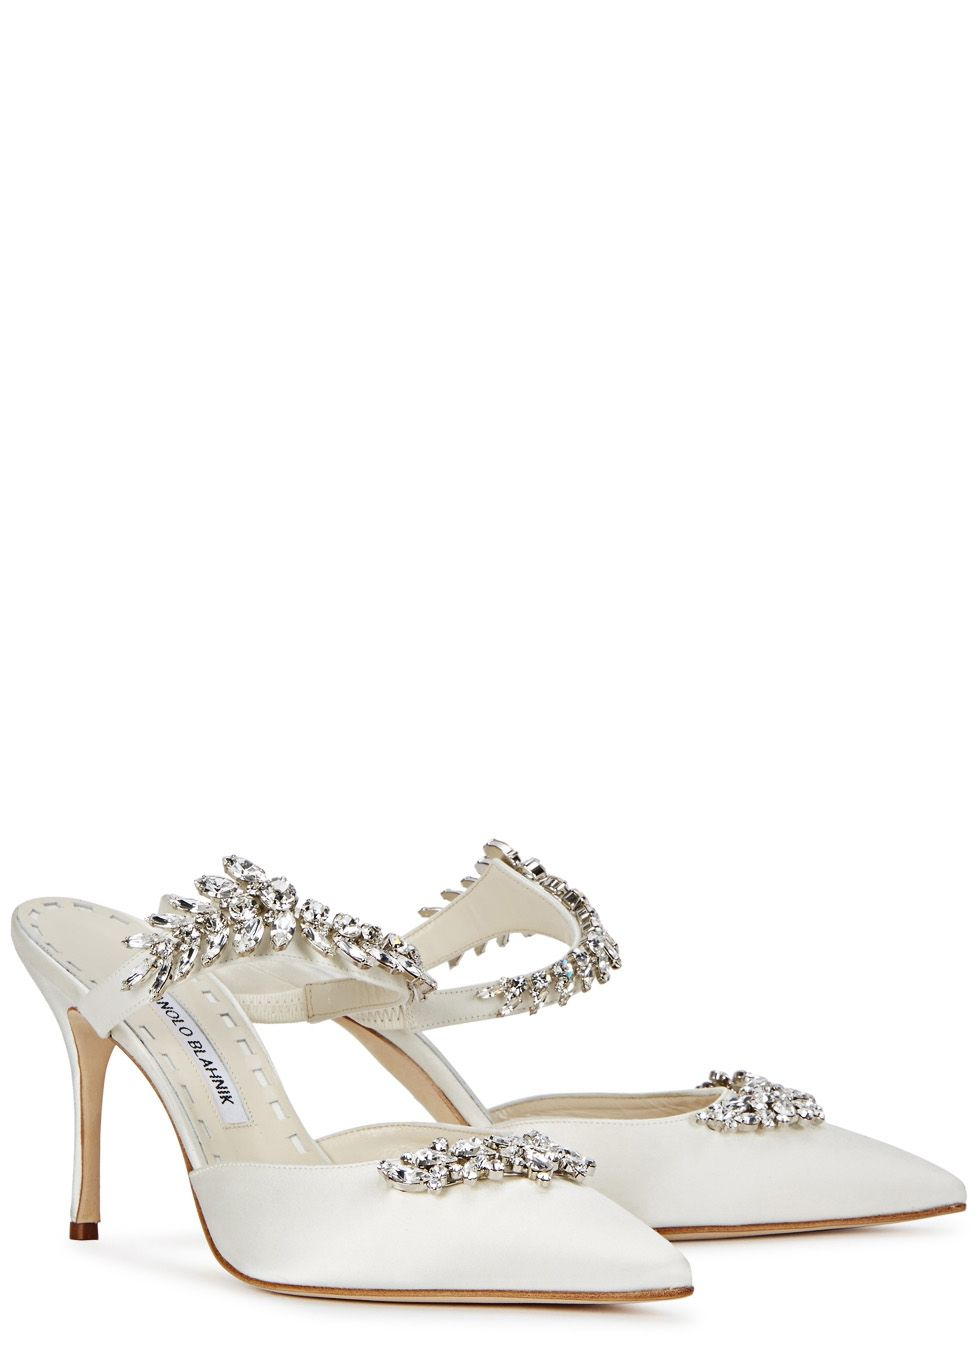 fb2bd0290f9f3 Wedding shoes - best wedding shoes for UK brides